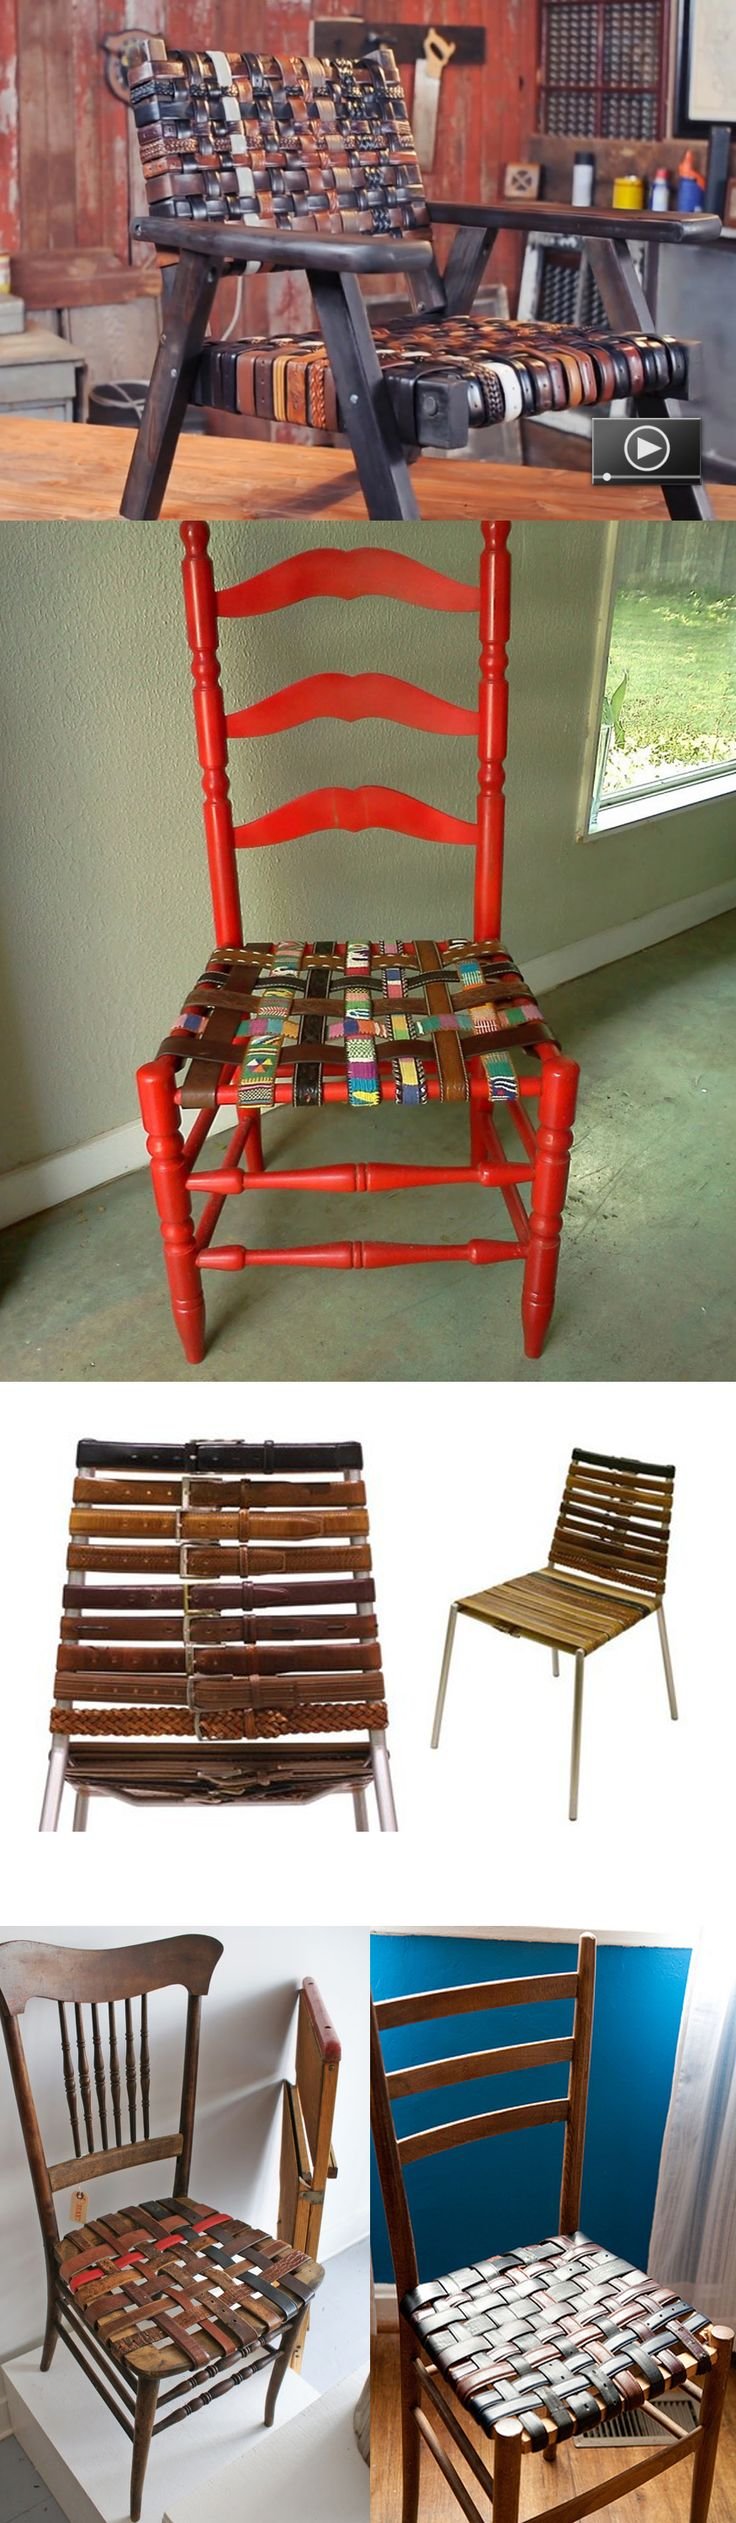 Top 25 ideas about old chairs on pinterest chair bench upcycled furniture and repurposed - Ways of accessorizing love seats ...